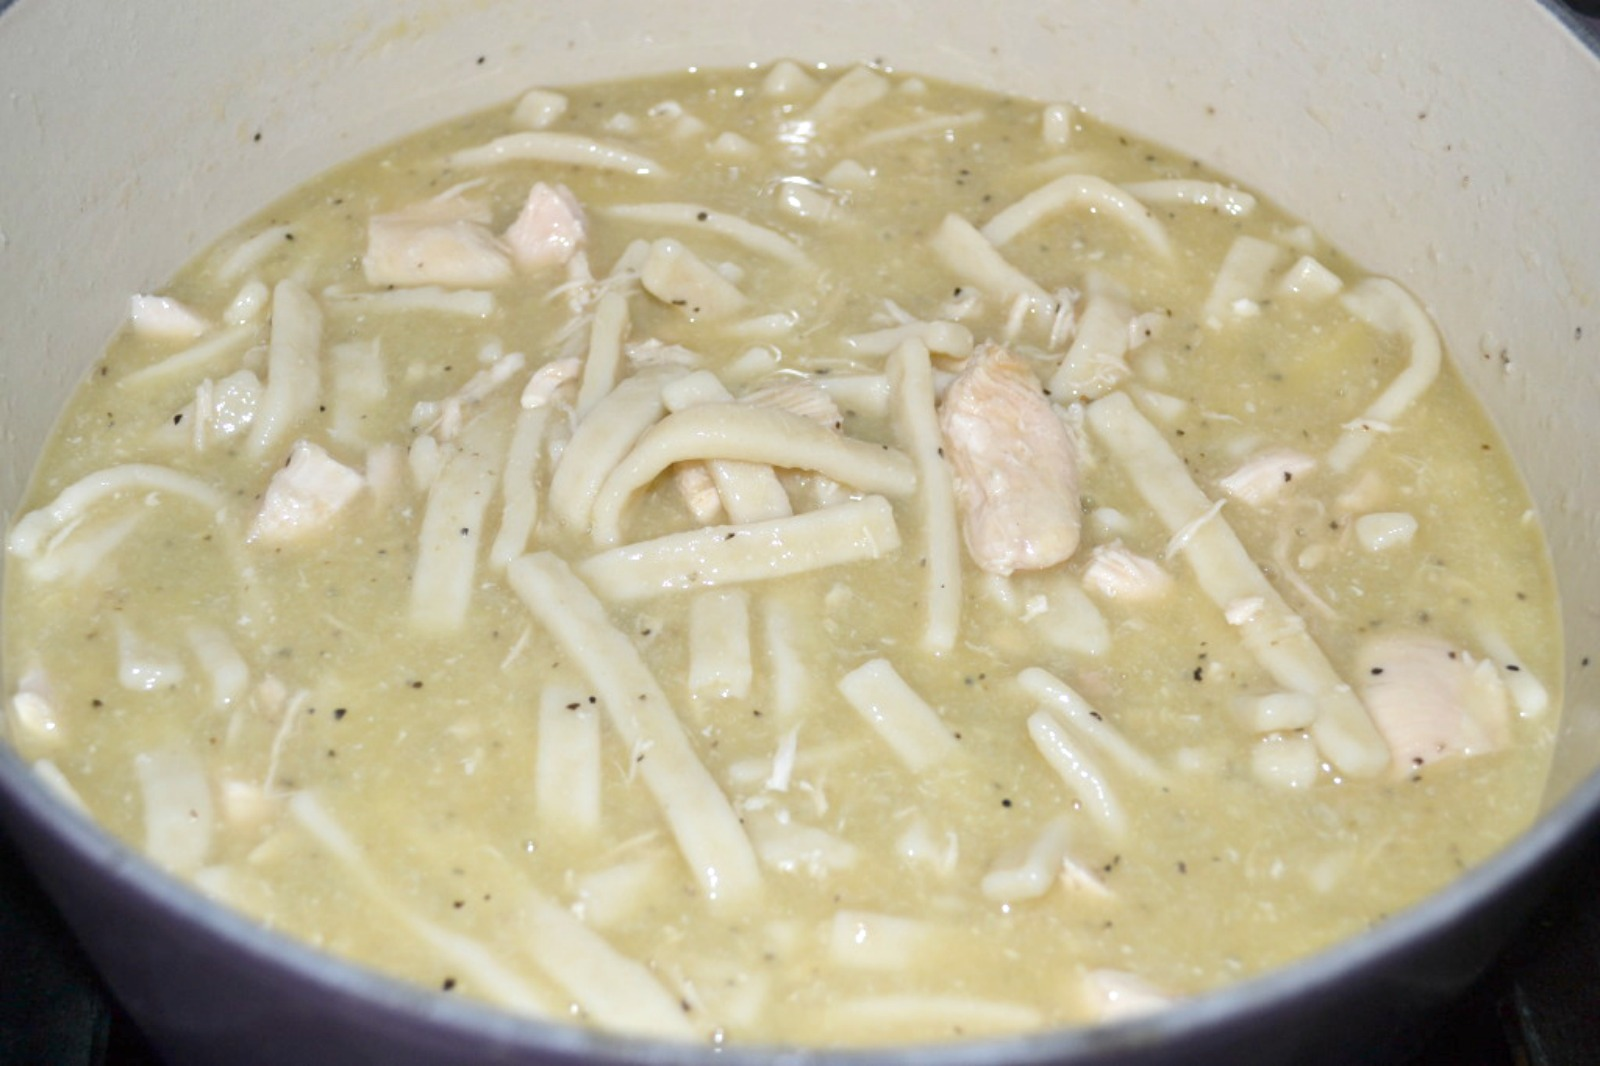 Homestyle chicken and noodles. Easy recipe with old fashioned flavor.